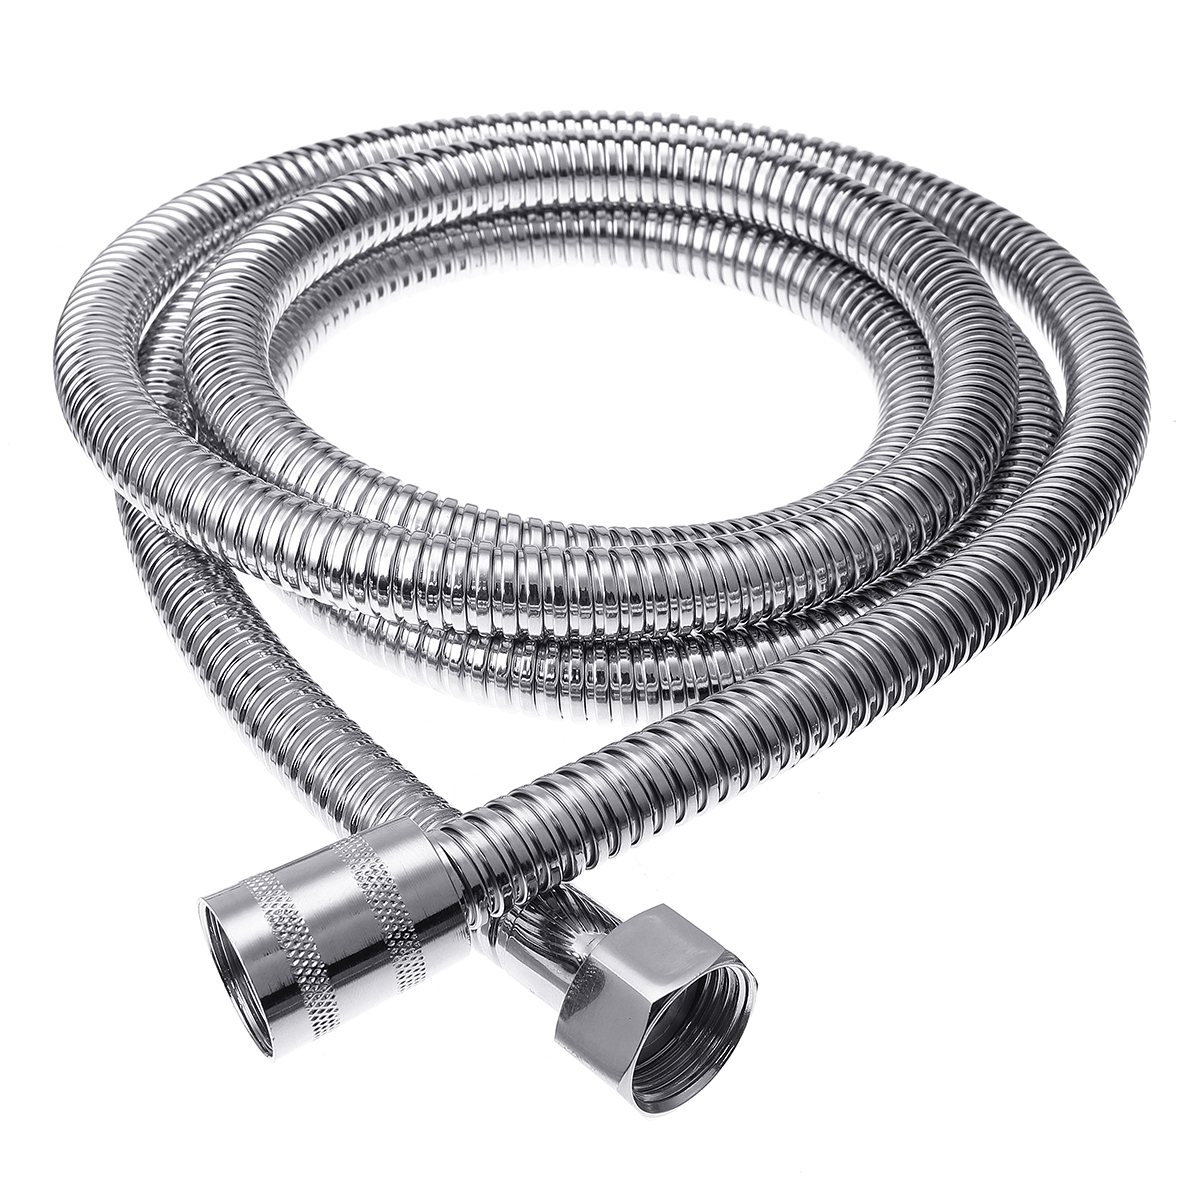 2M Long Stainless Steel Handheld Shower Tube Hose Replacement For Bathroom